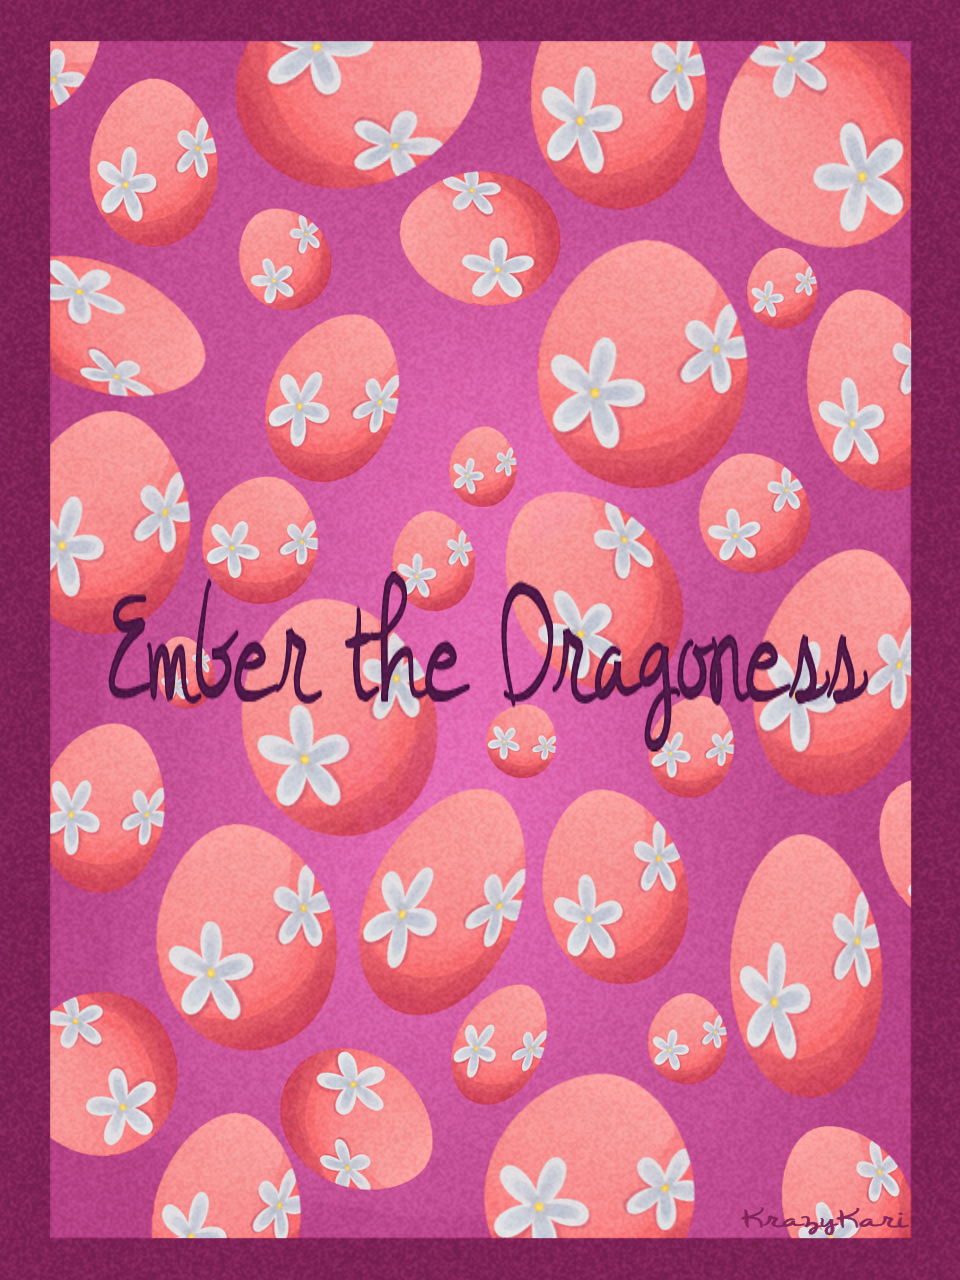 (Spyro the Dragon) Ember Eggs